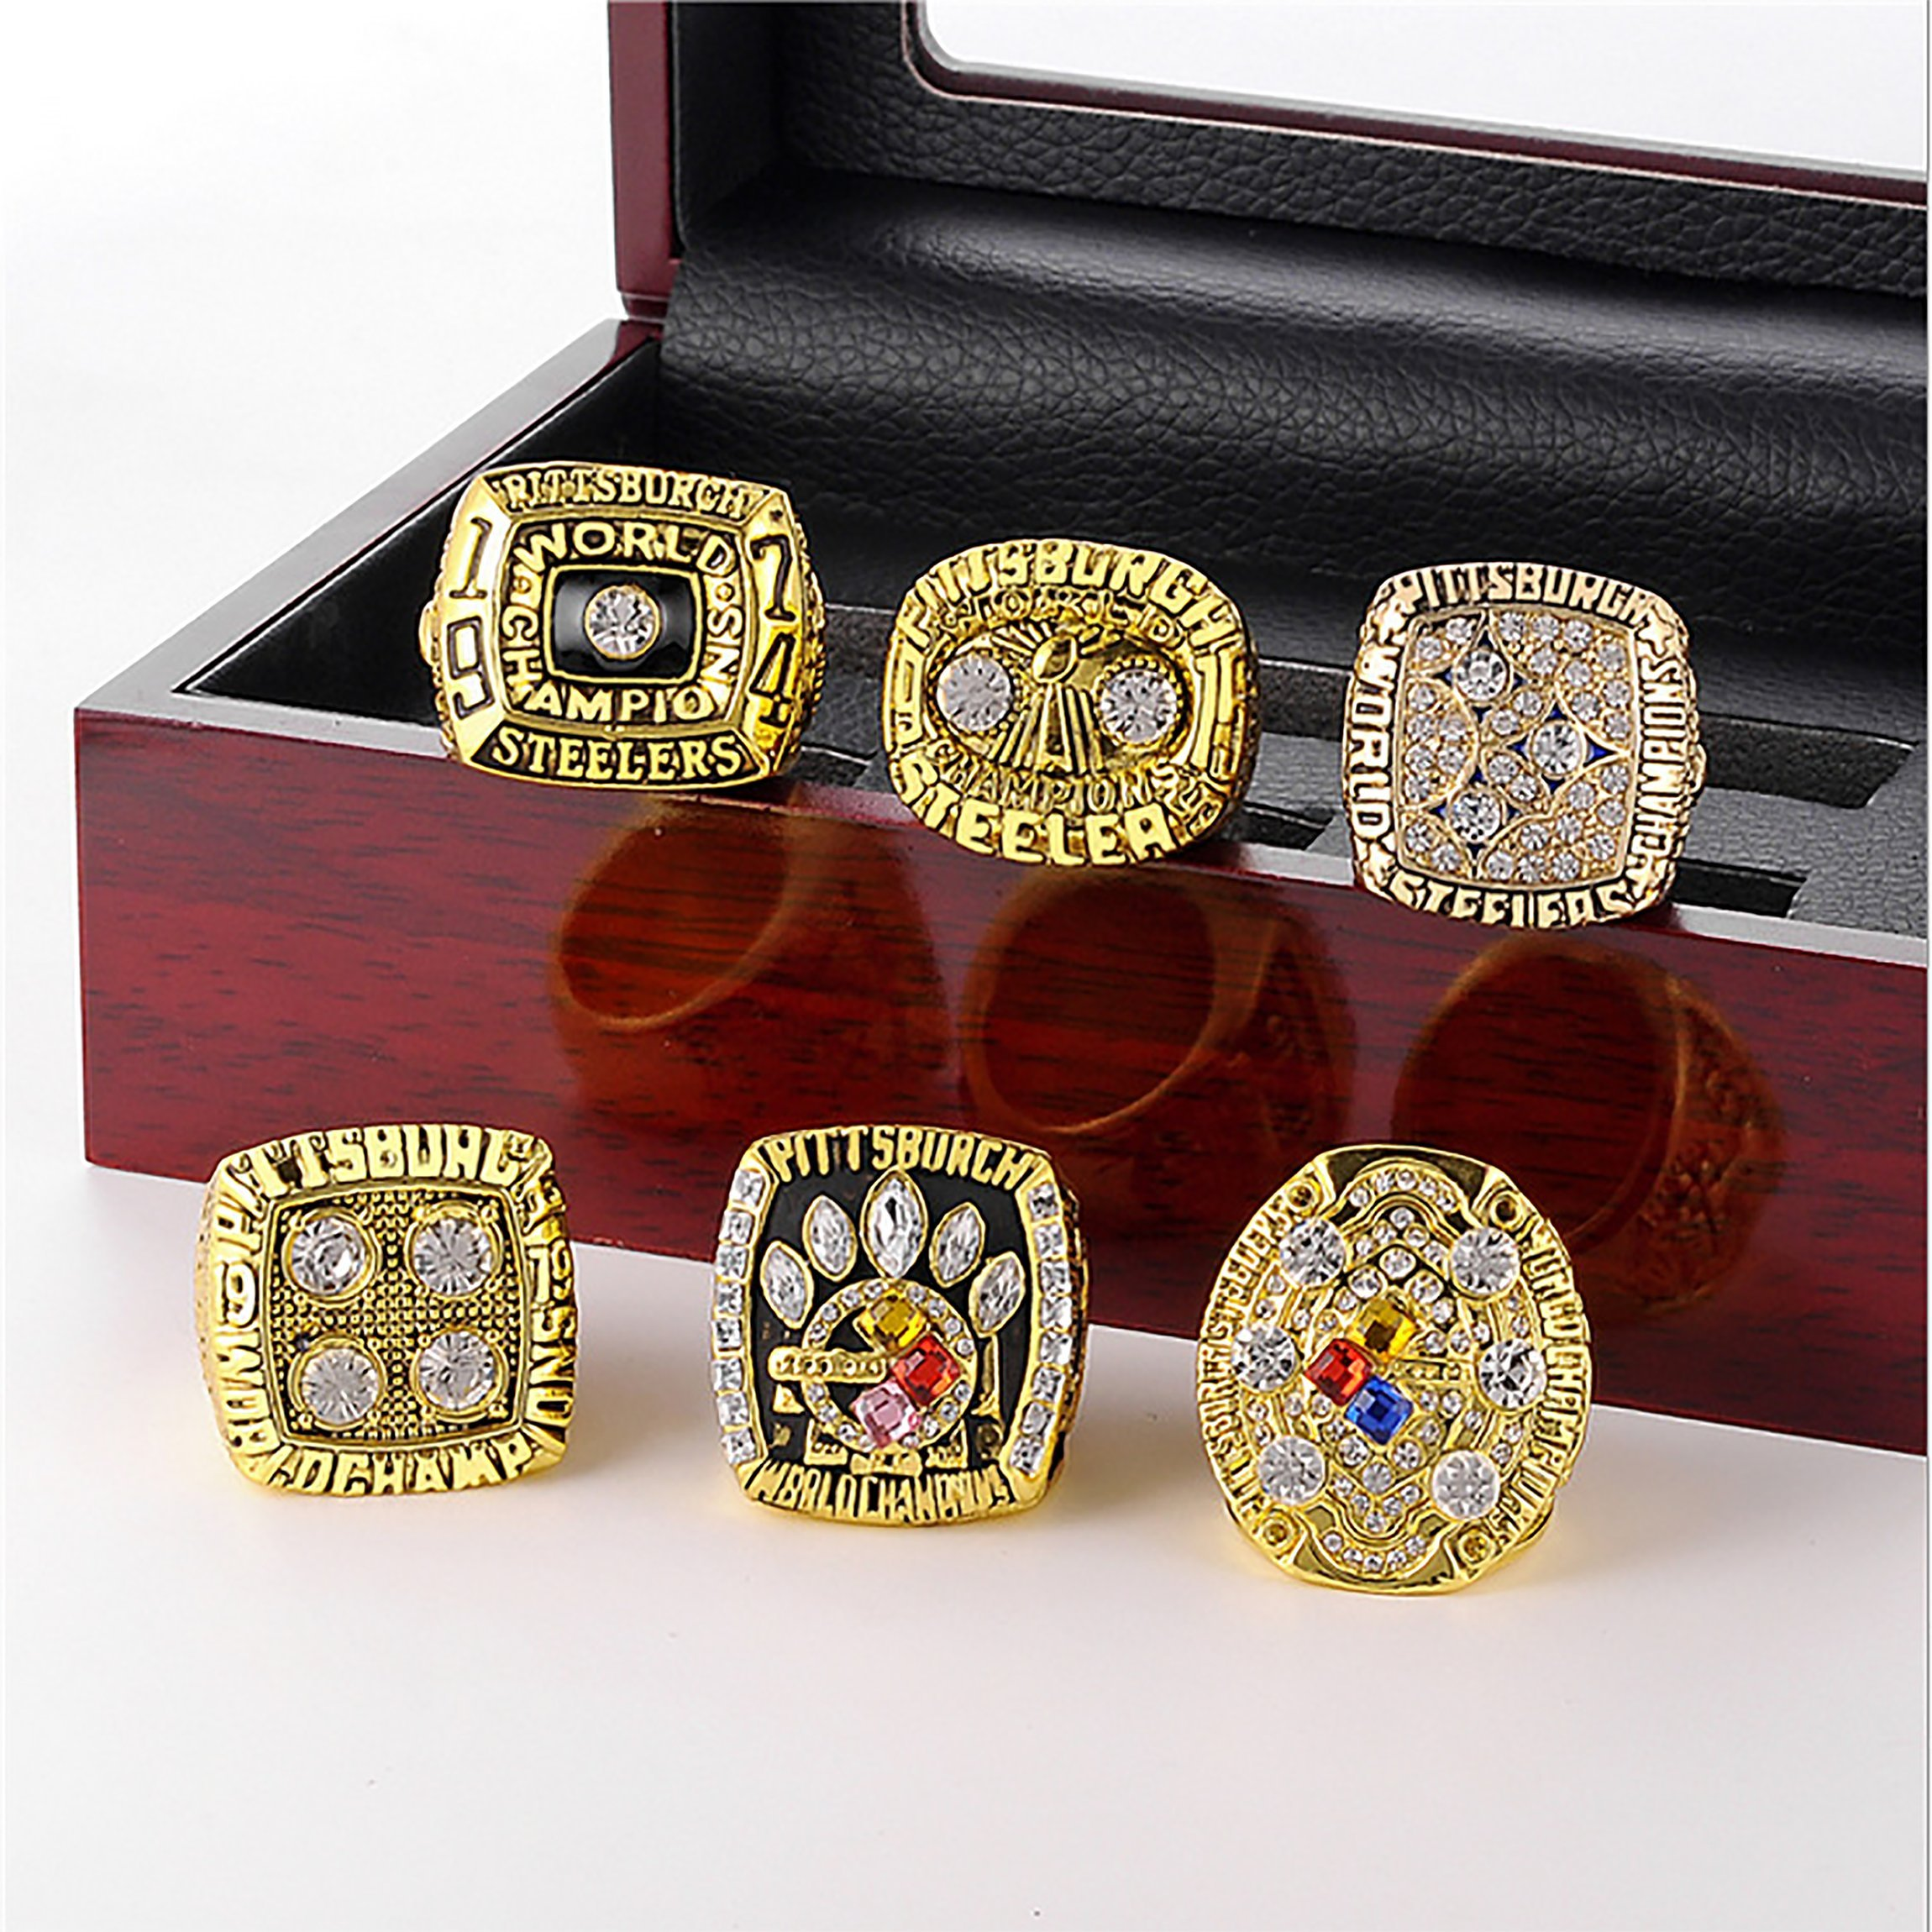 GF-sports store A Set of 6 Pittsburgh Steelers Super Bowl Championship Replica Ring by Display Box Set-(Yellow) by GF-sports store (Image #2)